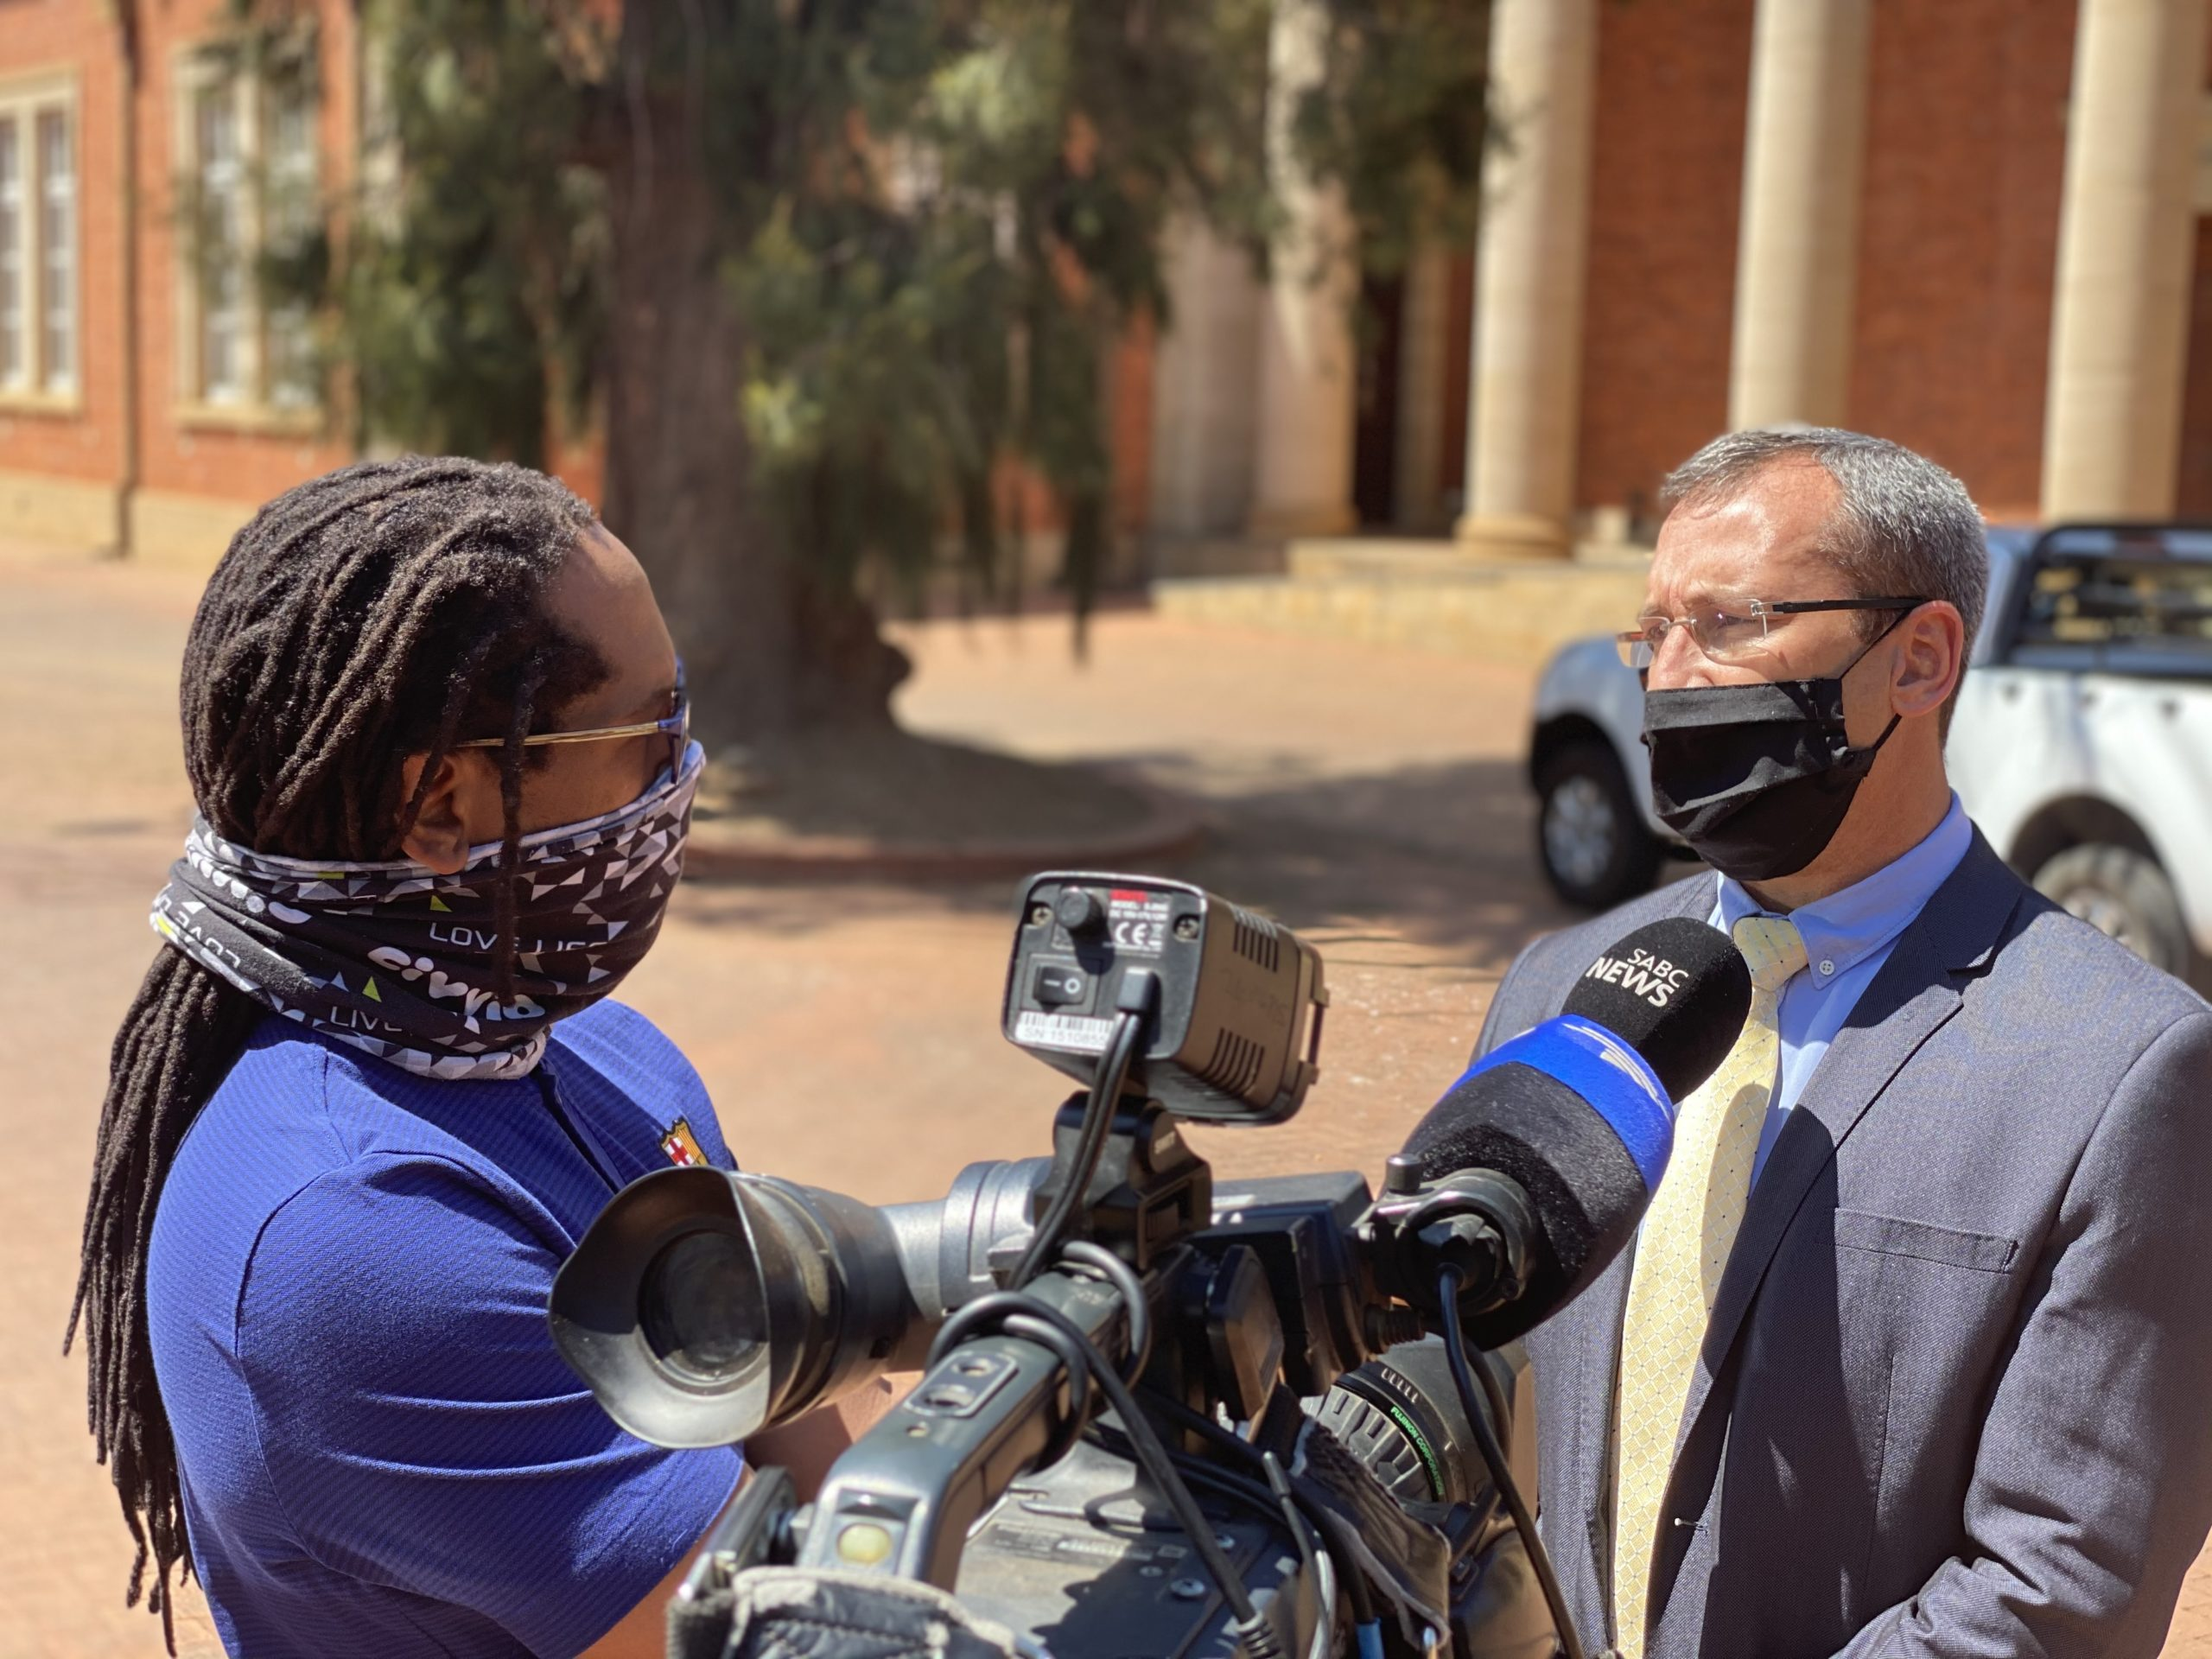 DA requests accountability from MEC for Finance in SIU findings